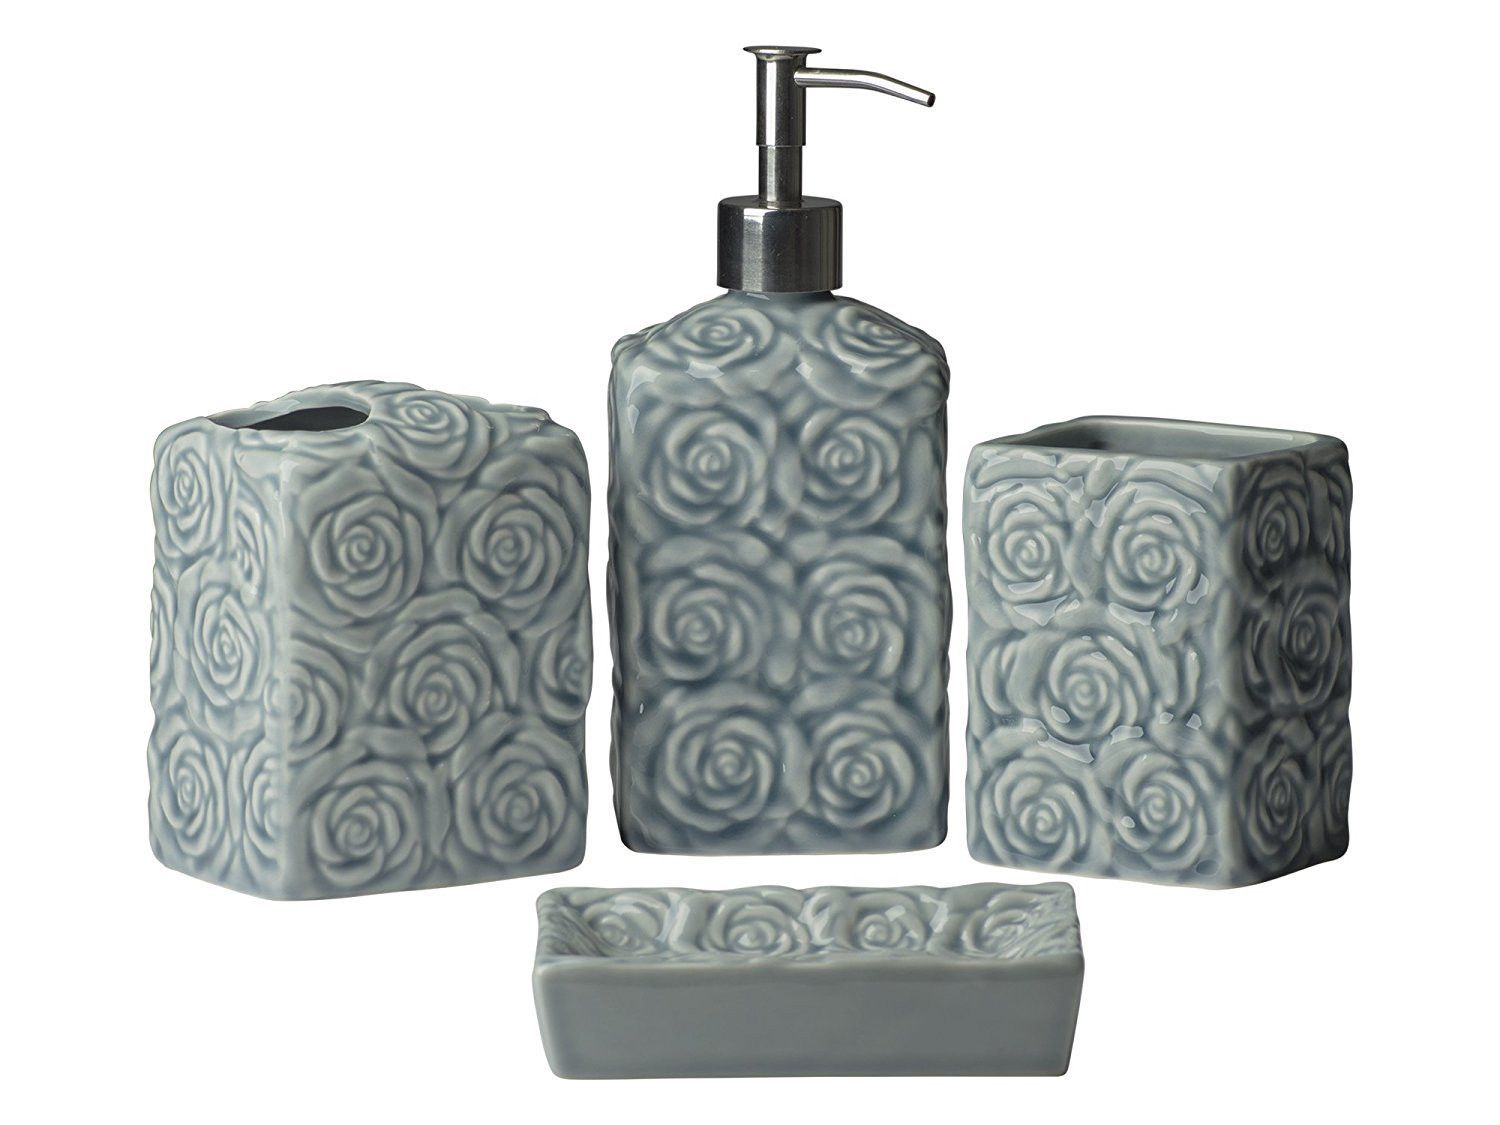 Piece Bathroom Accessories Set Wild Rose W Soap Or Lotion - Bathroom soap and lotion dispenser set